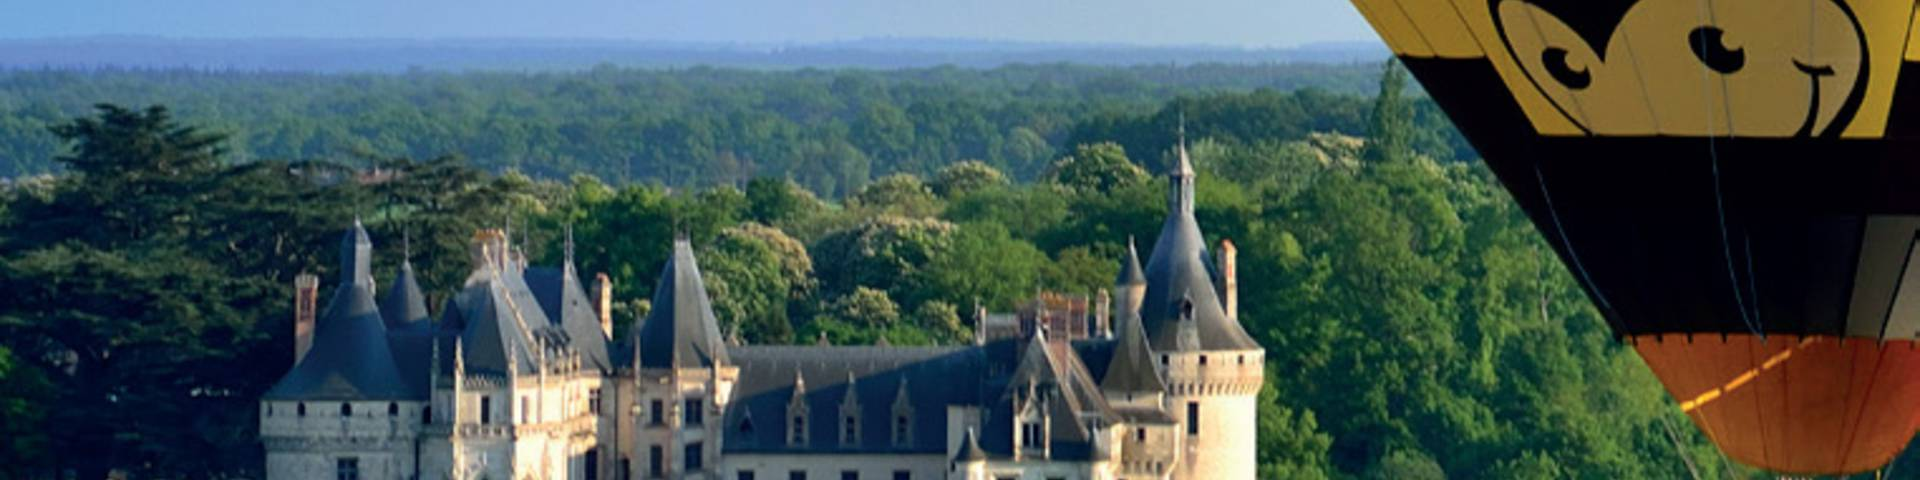 Hot air balloon flight over the castles and the Loire